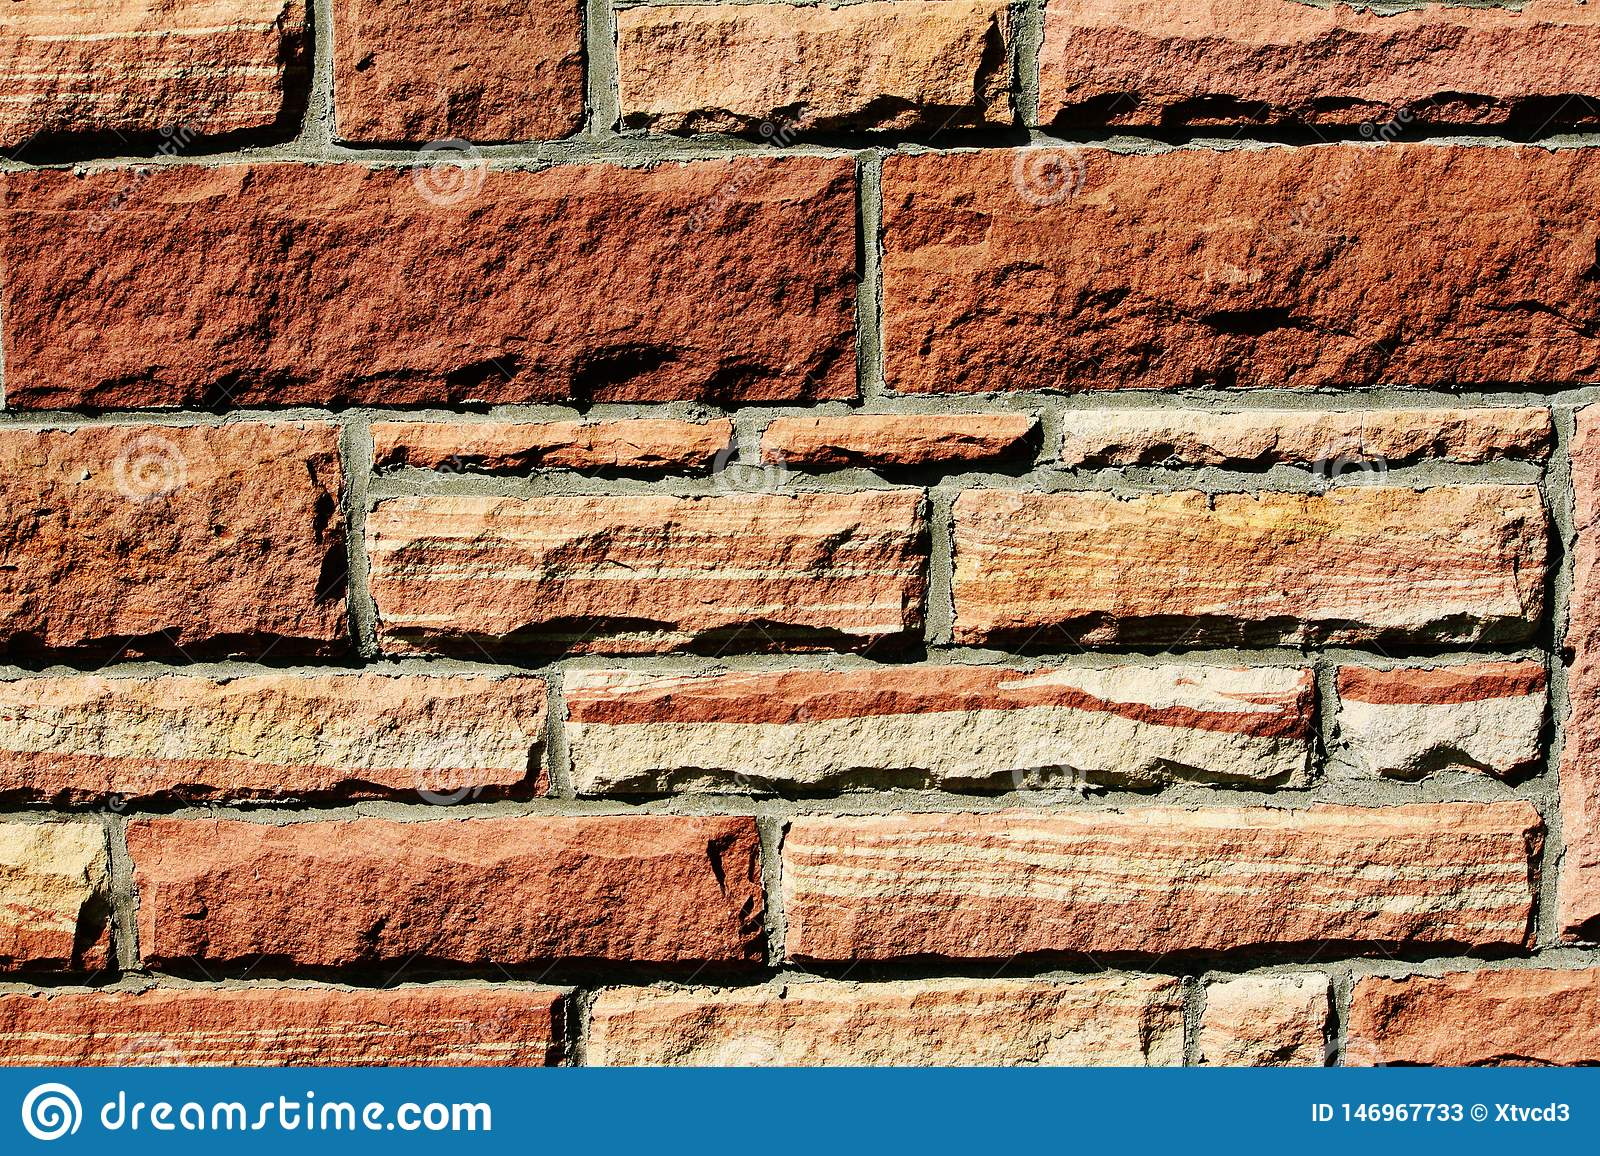 Texture background of a red sandstone wall